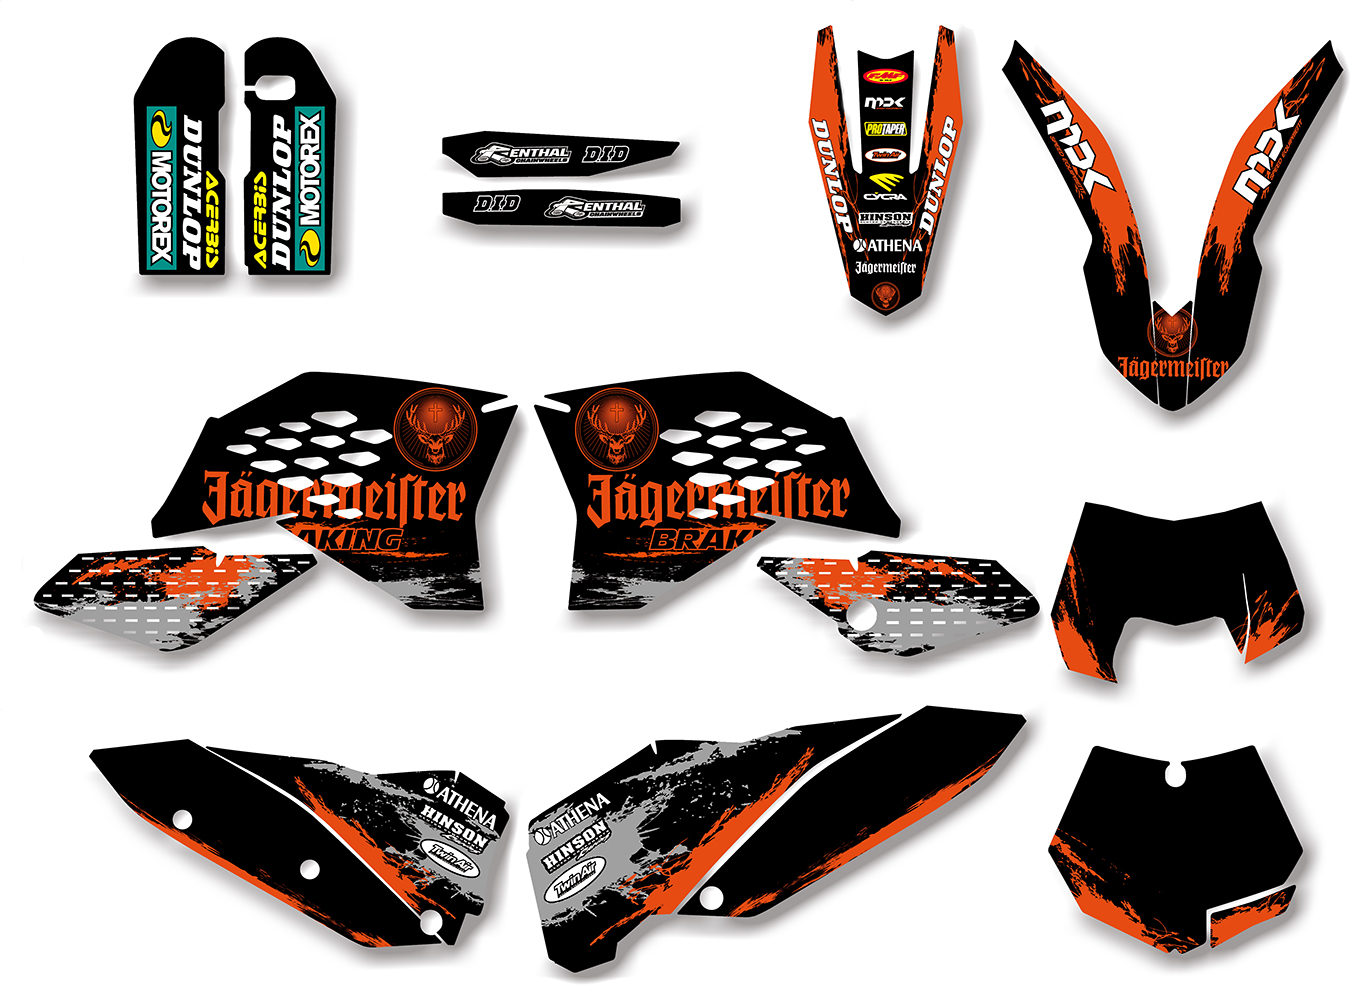 Motorctcle Graphic <font><b>Decal</b></font> Sticker For <font><b>KTM</b></font> 125 200 250 300 350 450 525 SX SXF 2007-2011 EXC XCF XC-F <font><b>2008</b></font> 2009 2010 2011 image